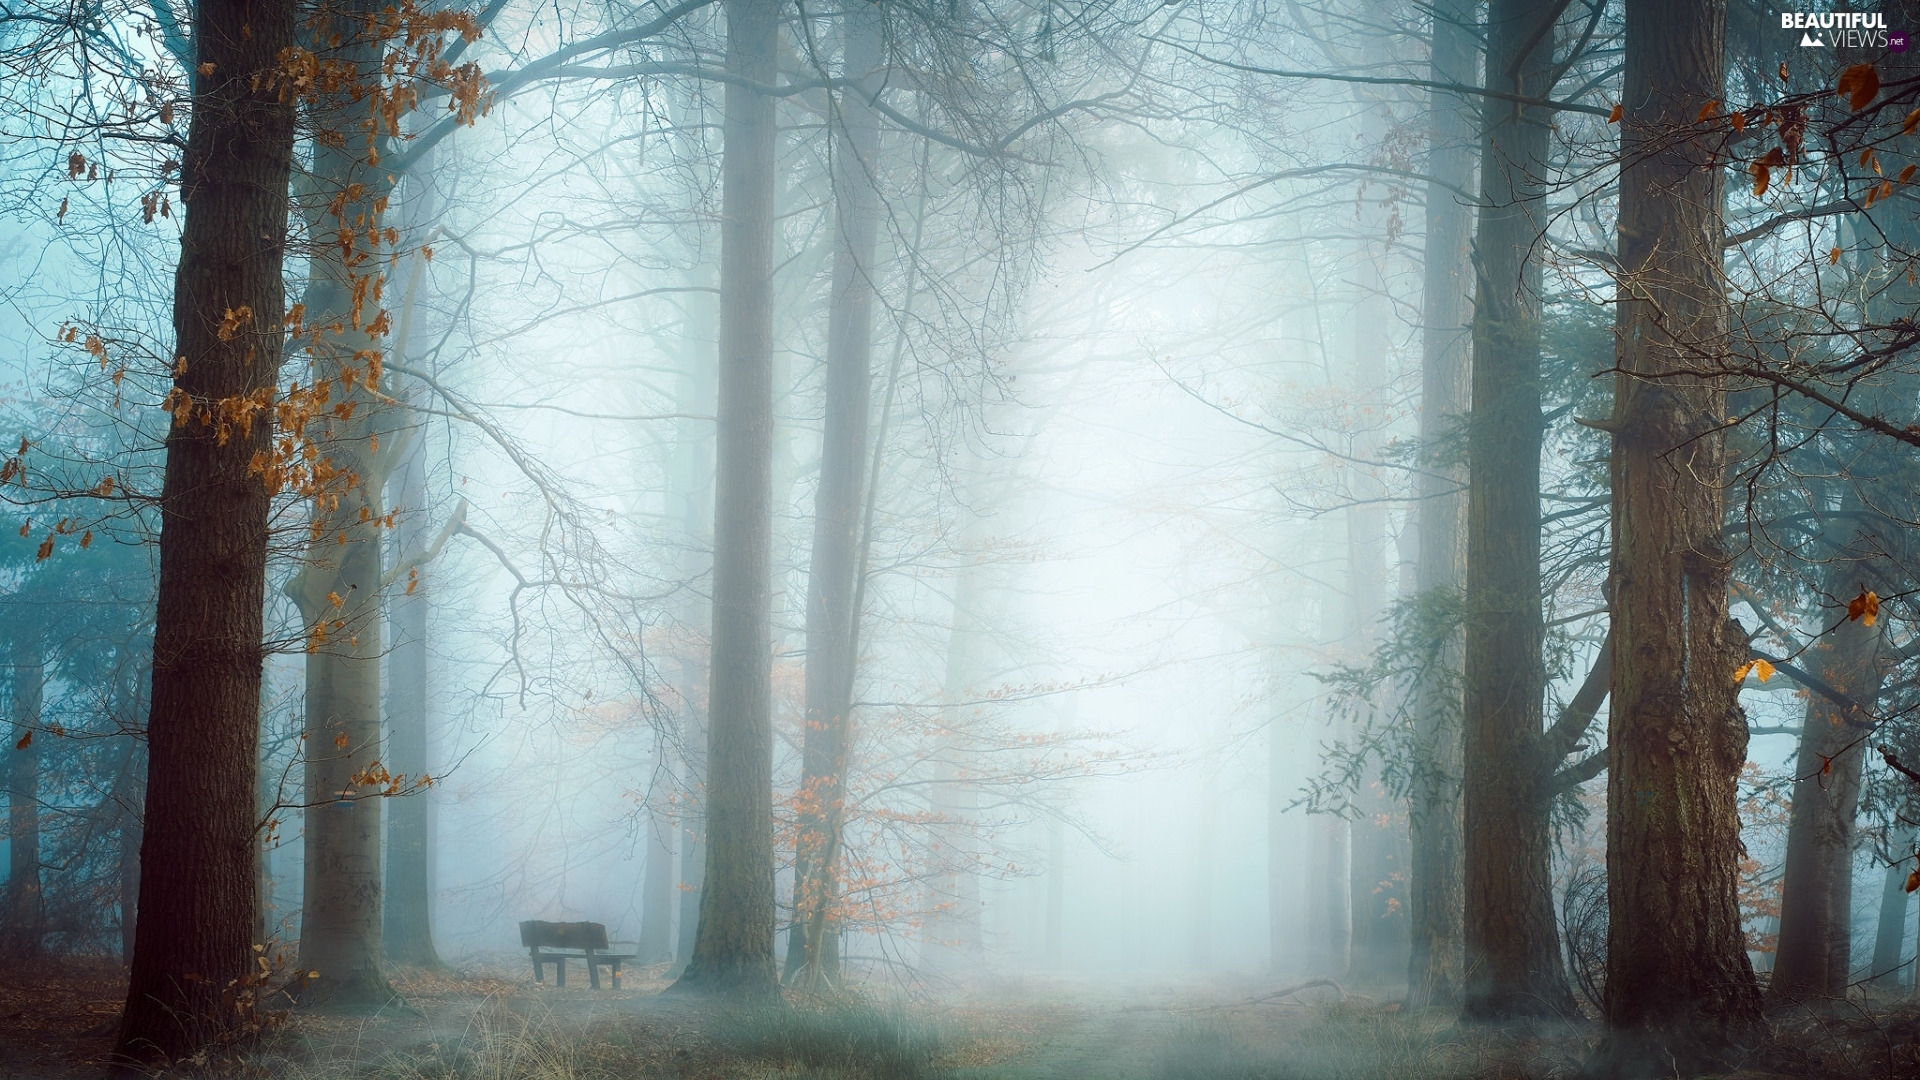 Fog, Bench, trees, viewes, forest